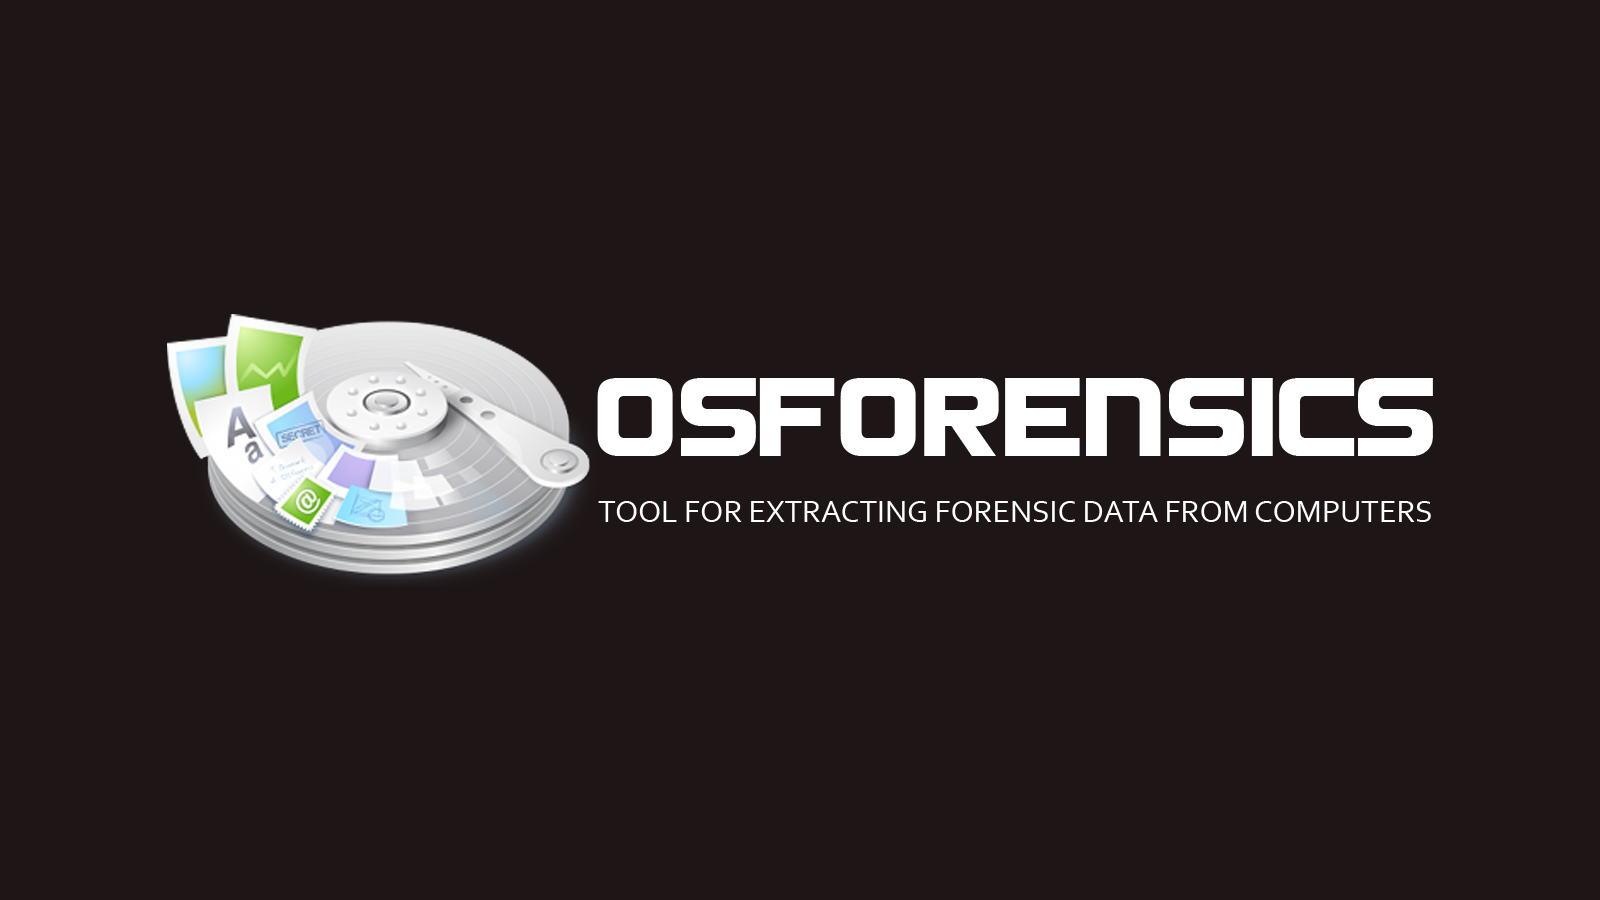 OSForensics Tool To Extract Forensic Data From Computers